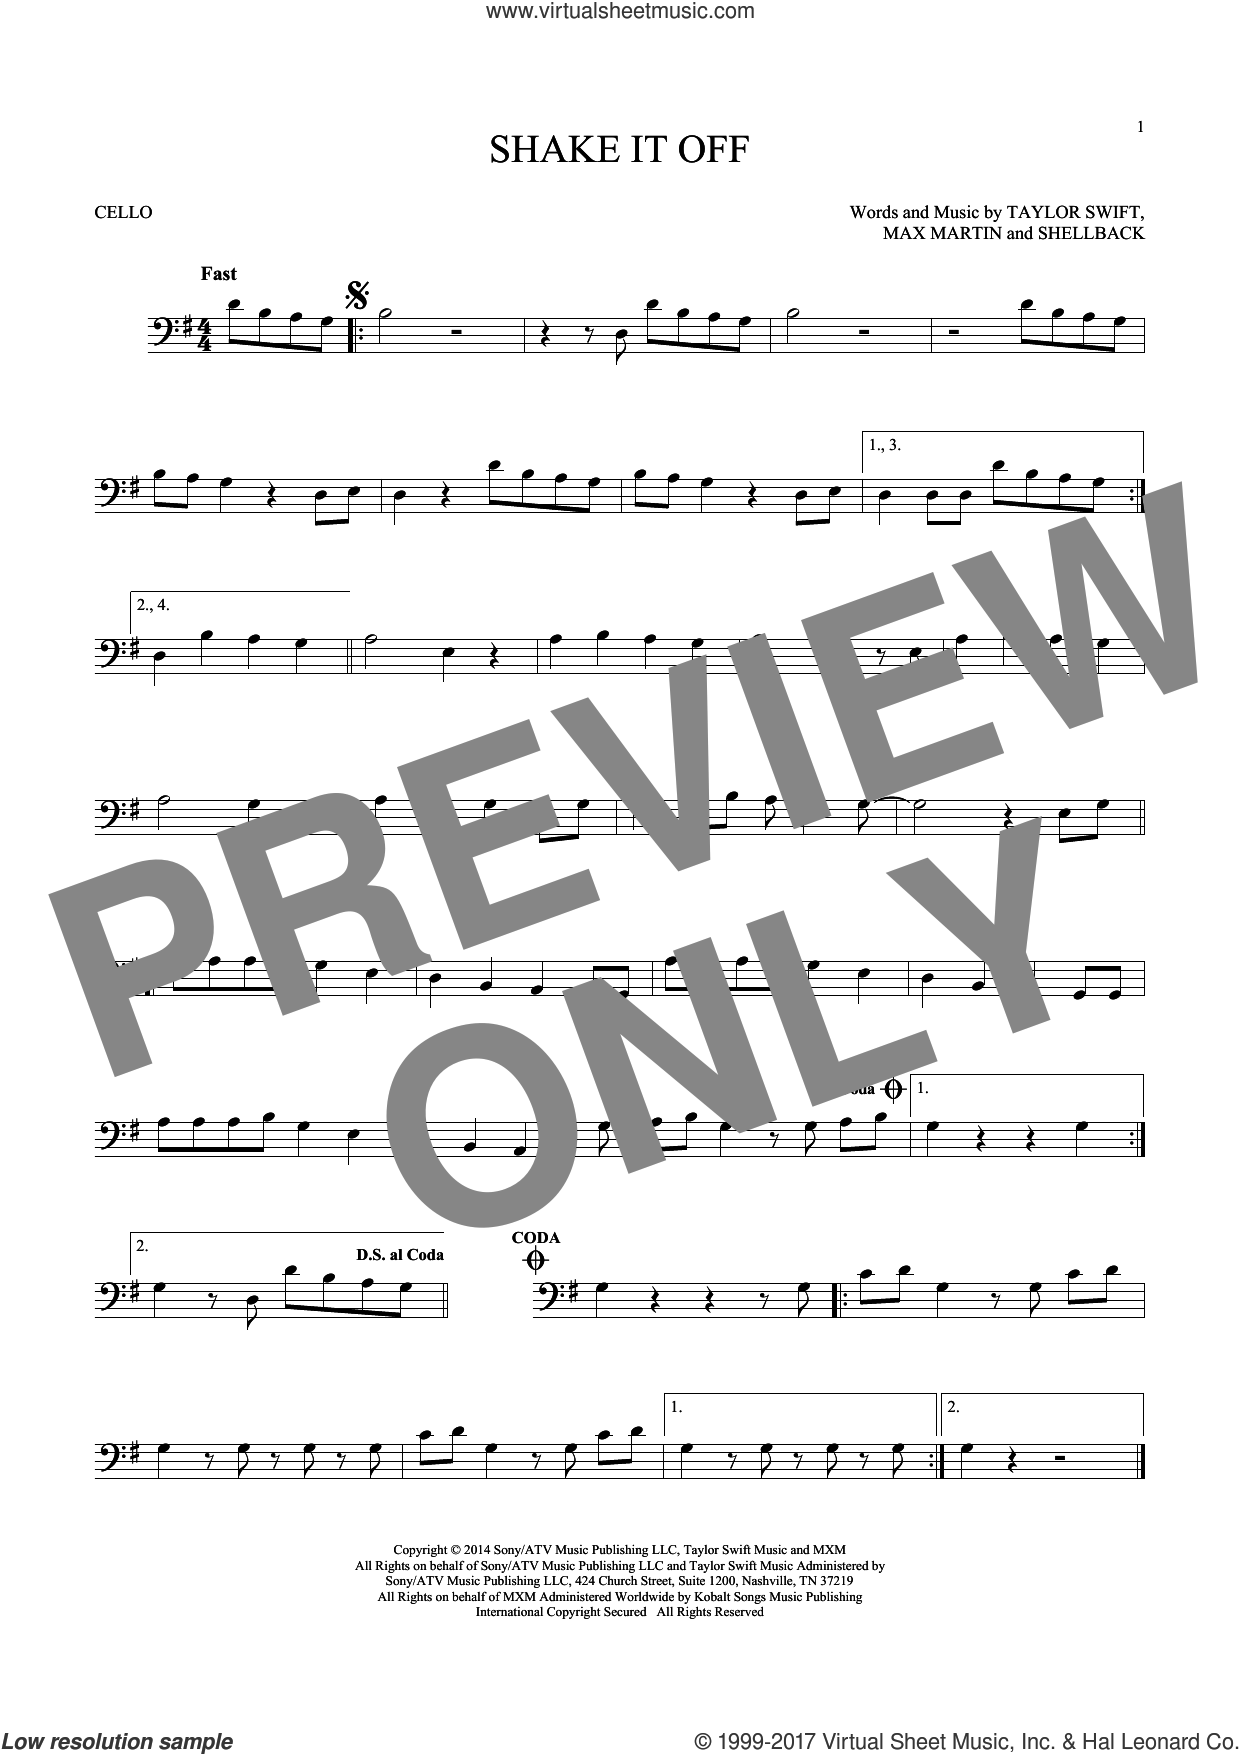 Shake It Off sheet music for cello solo by Shellback, Johan Schuster, Max Martin and Taylor Swift. Score Image Preview.